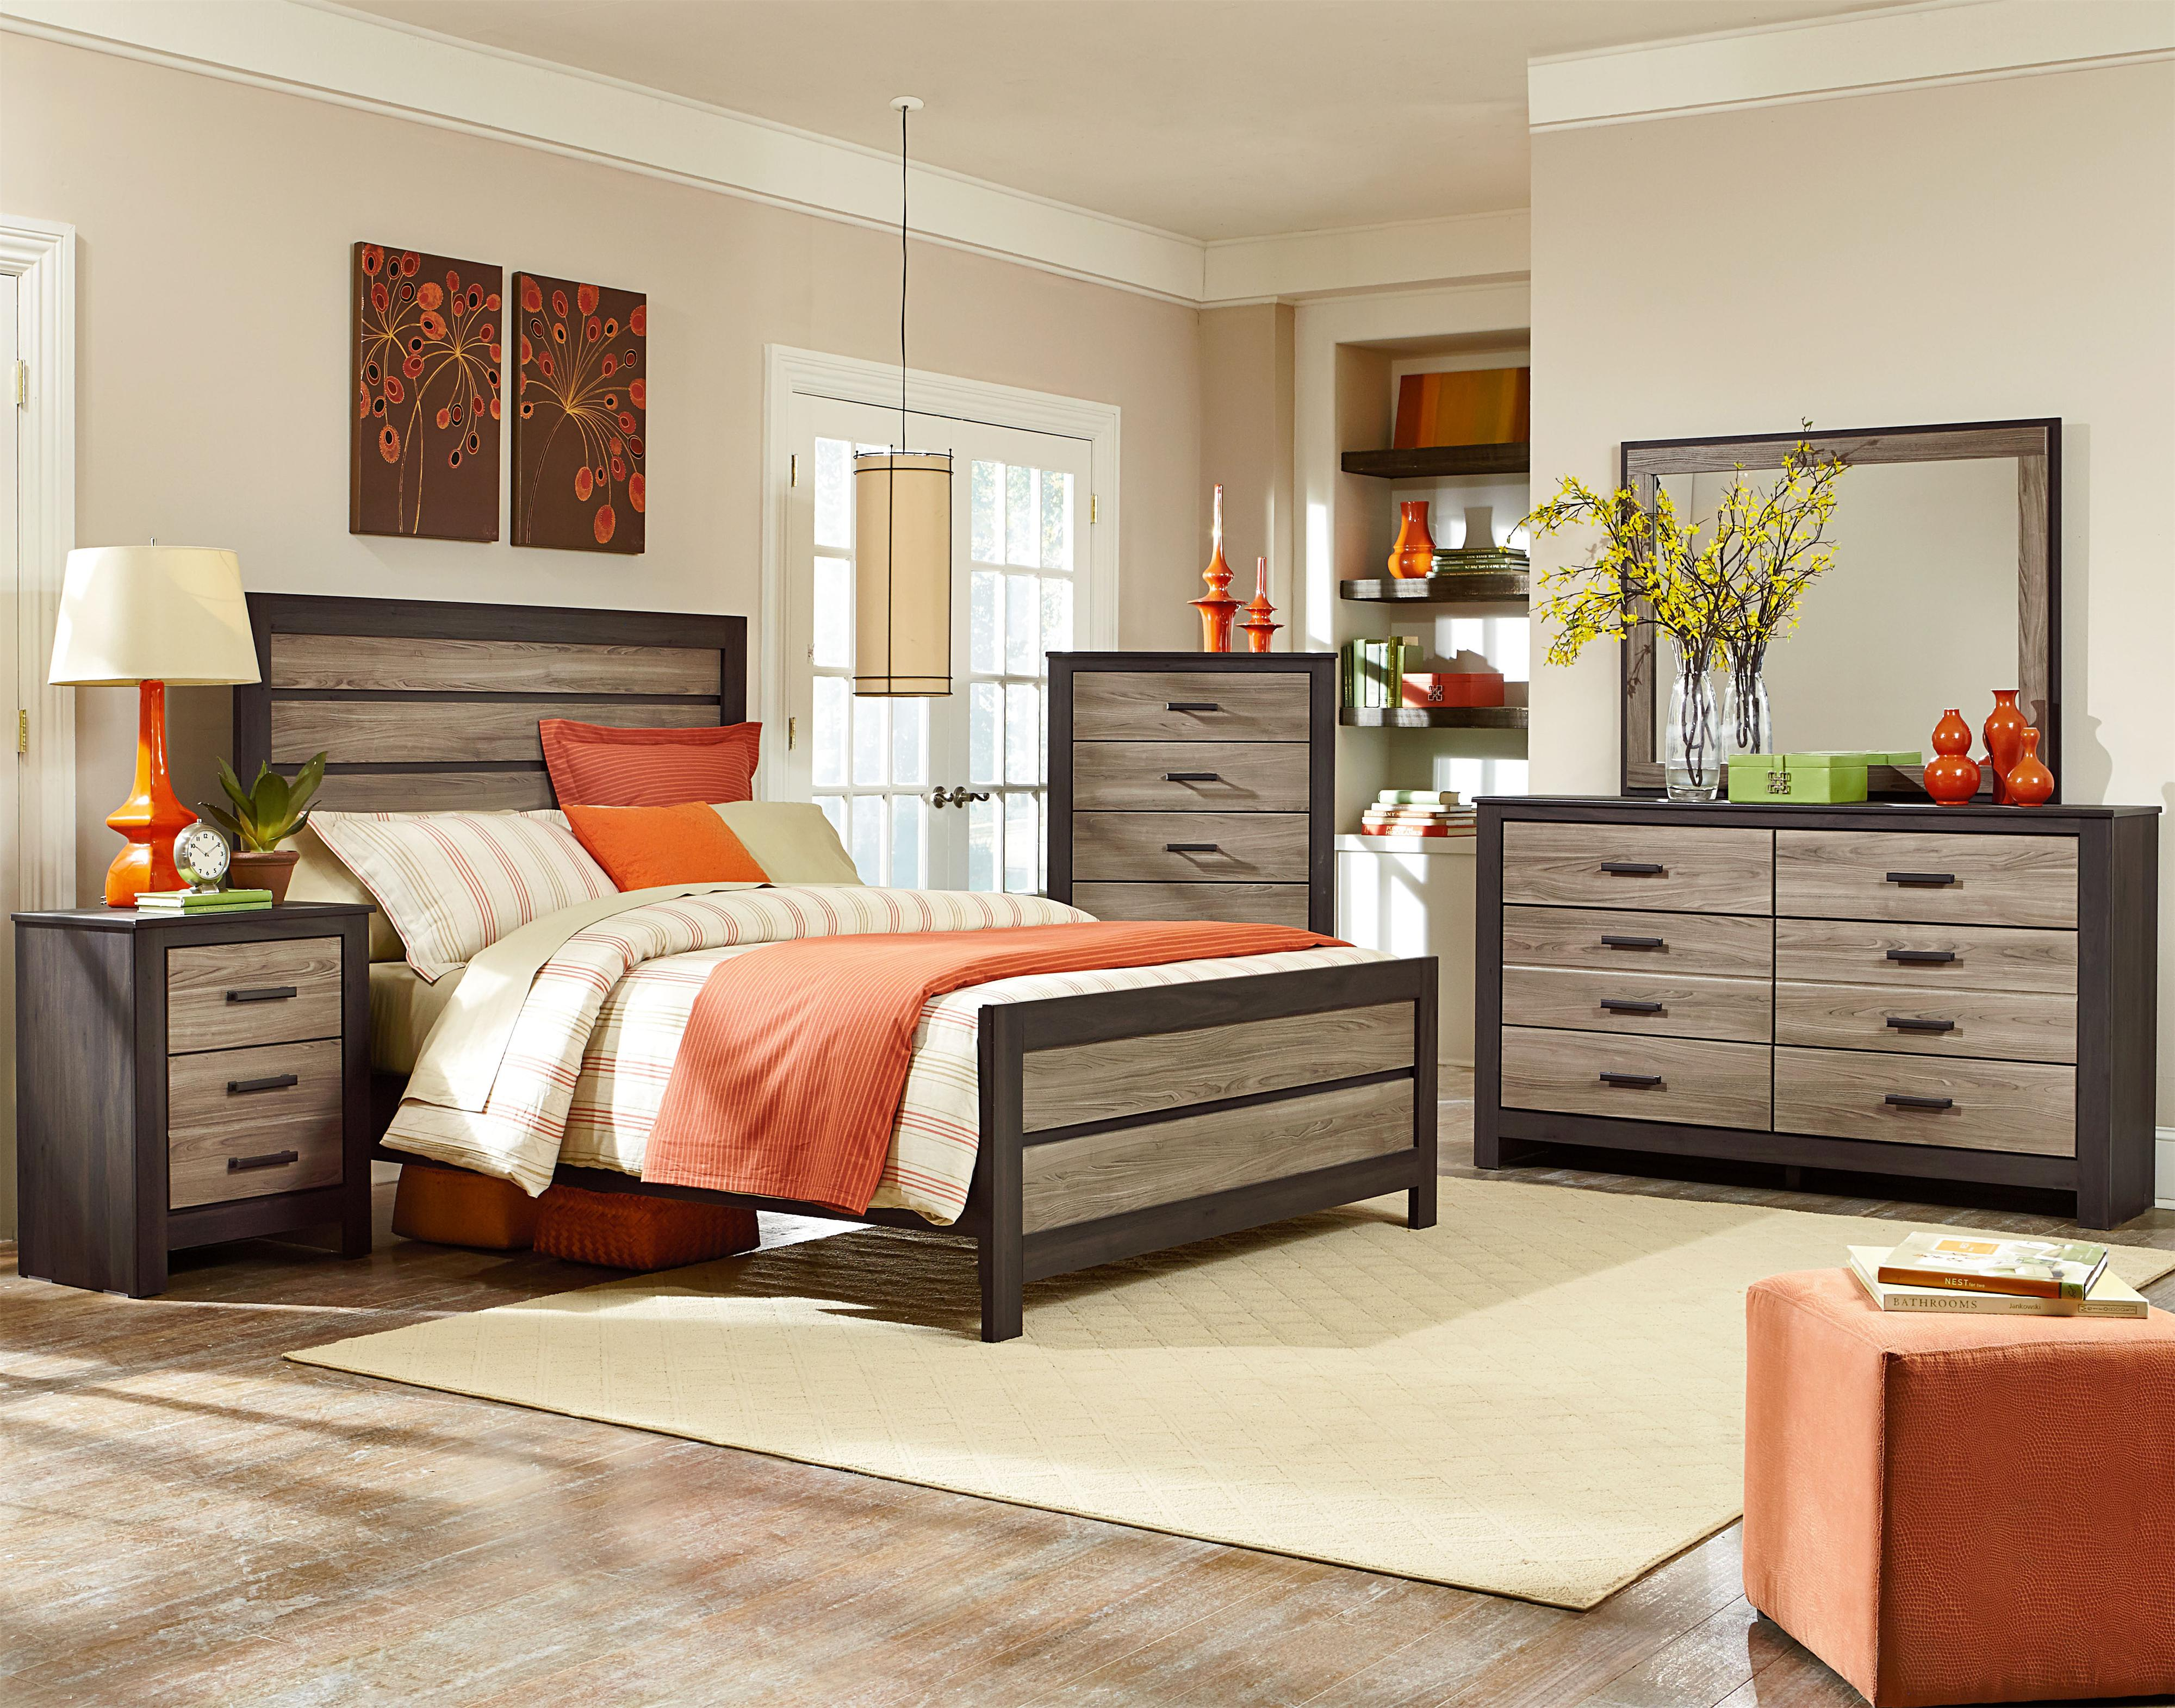 Standard Furniture Freemont King Bedroom Group - Item Number: 69750 K Bedroom Group 2